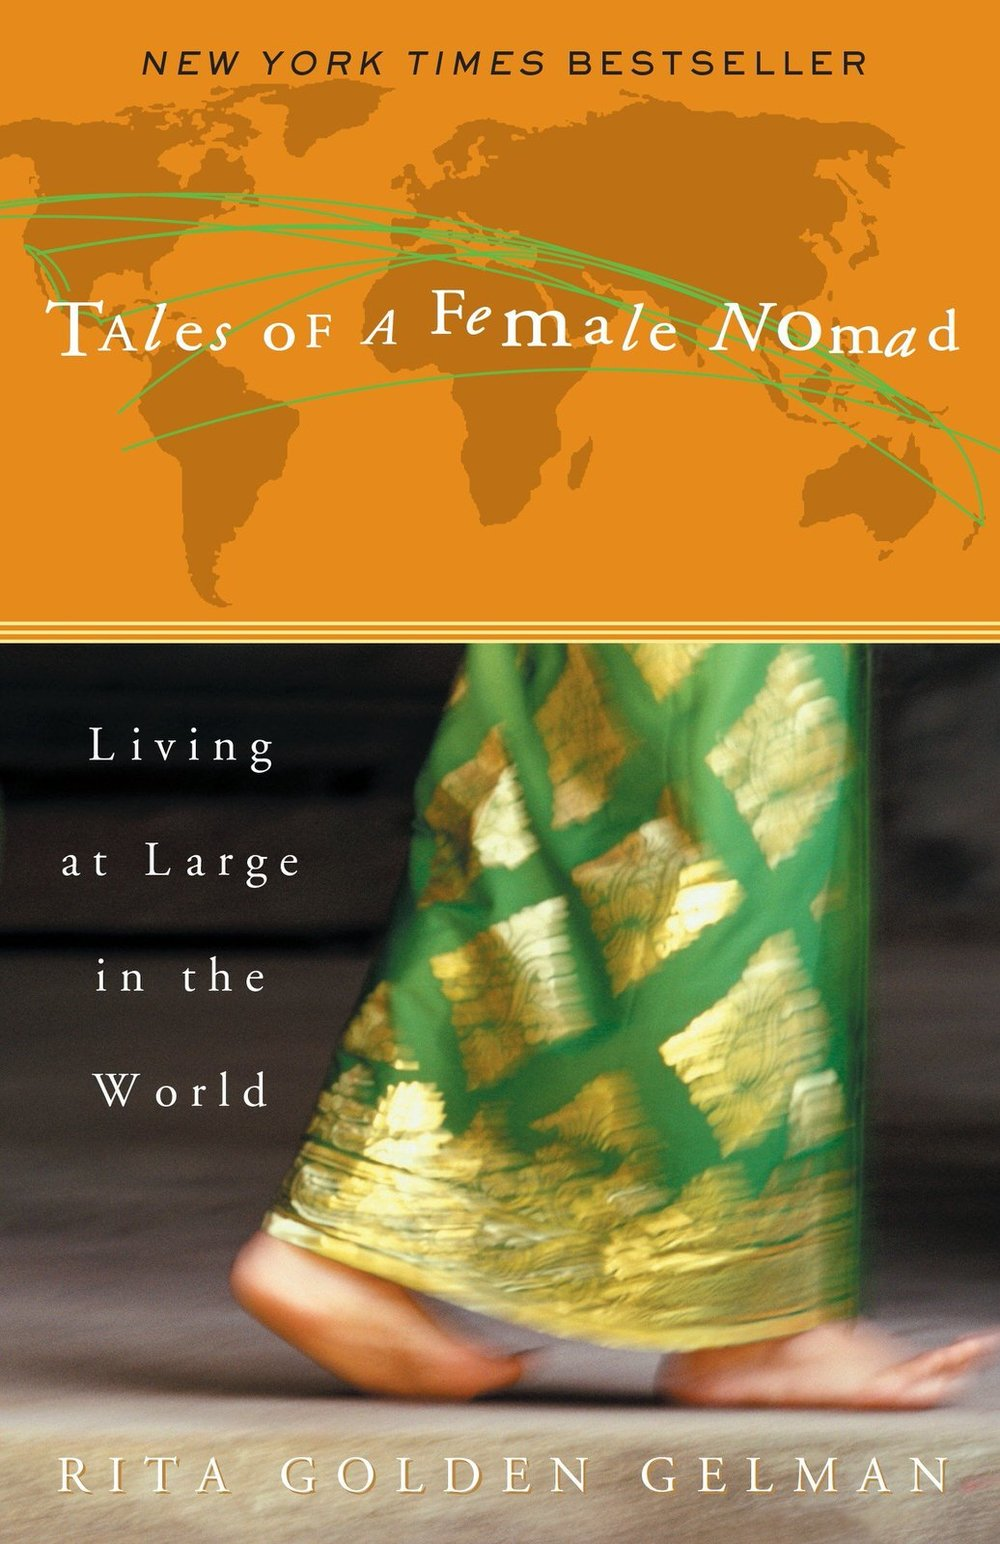 tales-of-a-female-nomad-book-cover